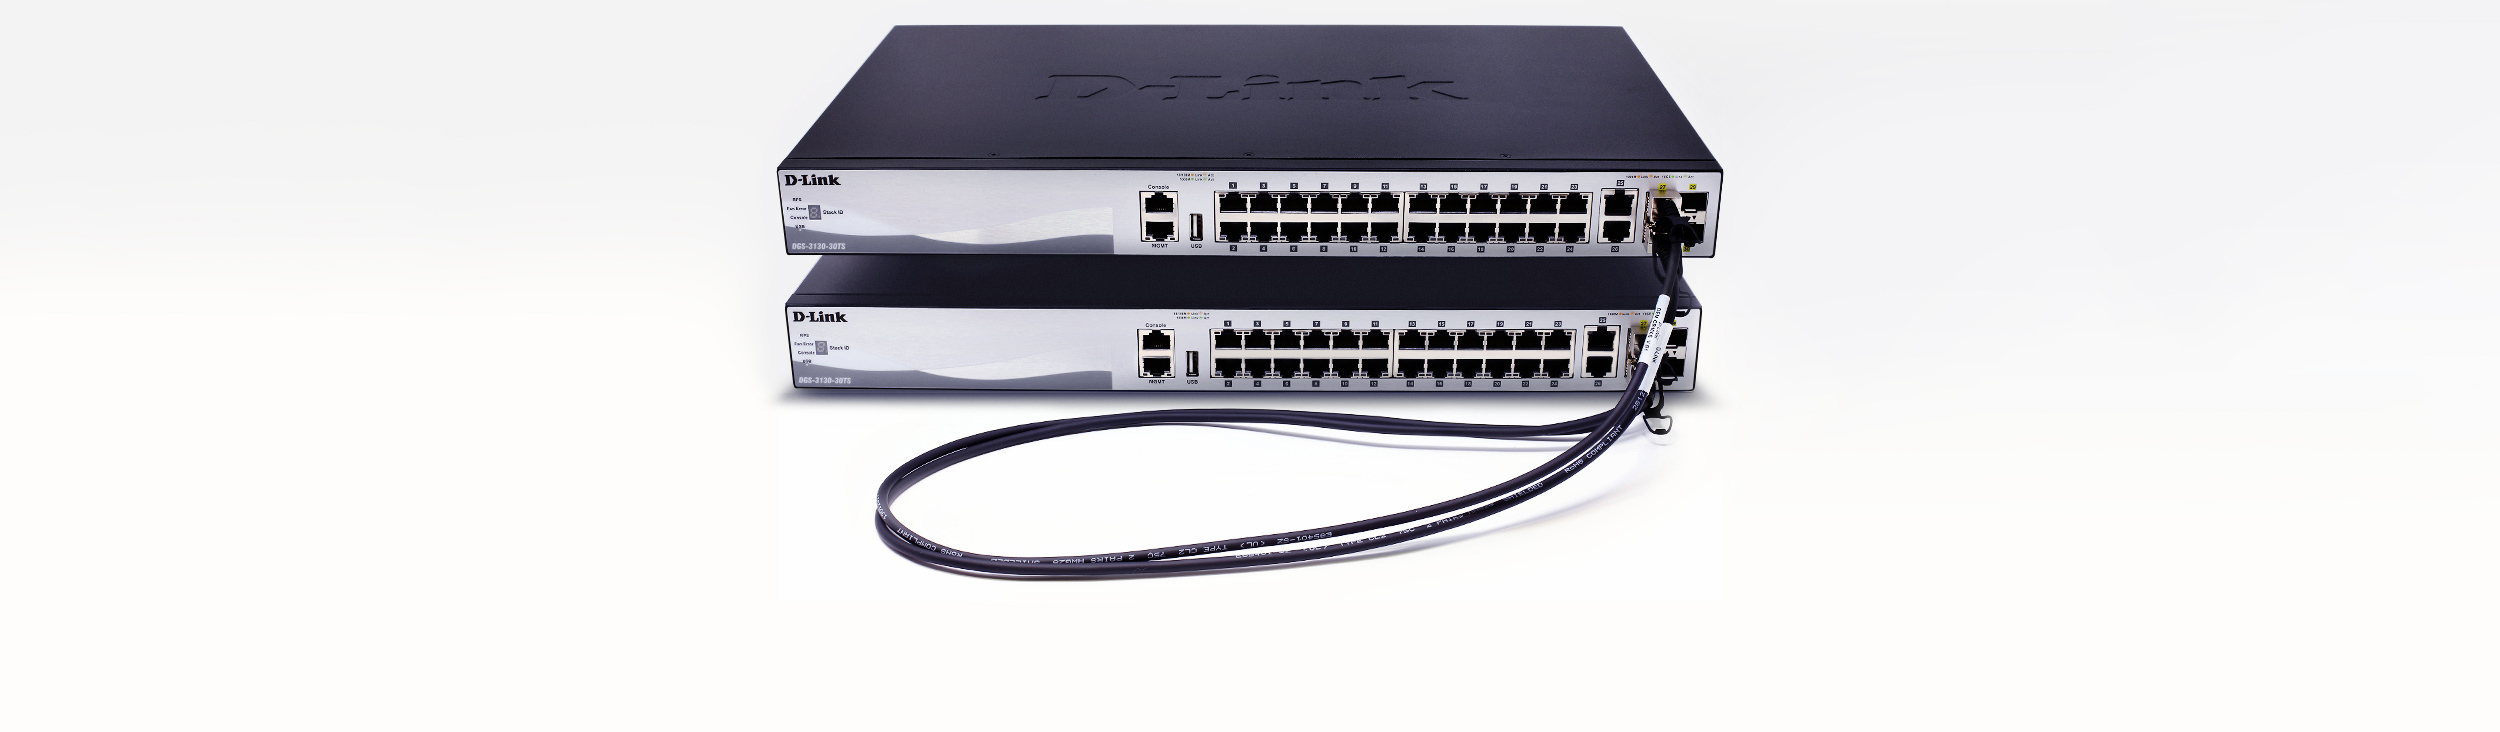 DGS-3130 Gigabit Layer 3 Stackable Managed Switches